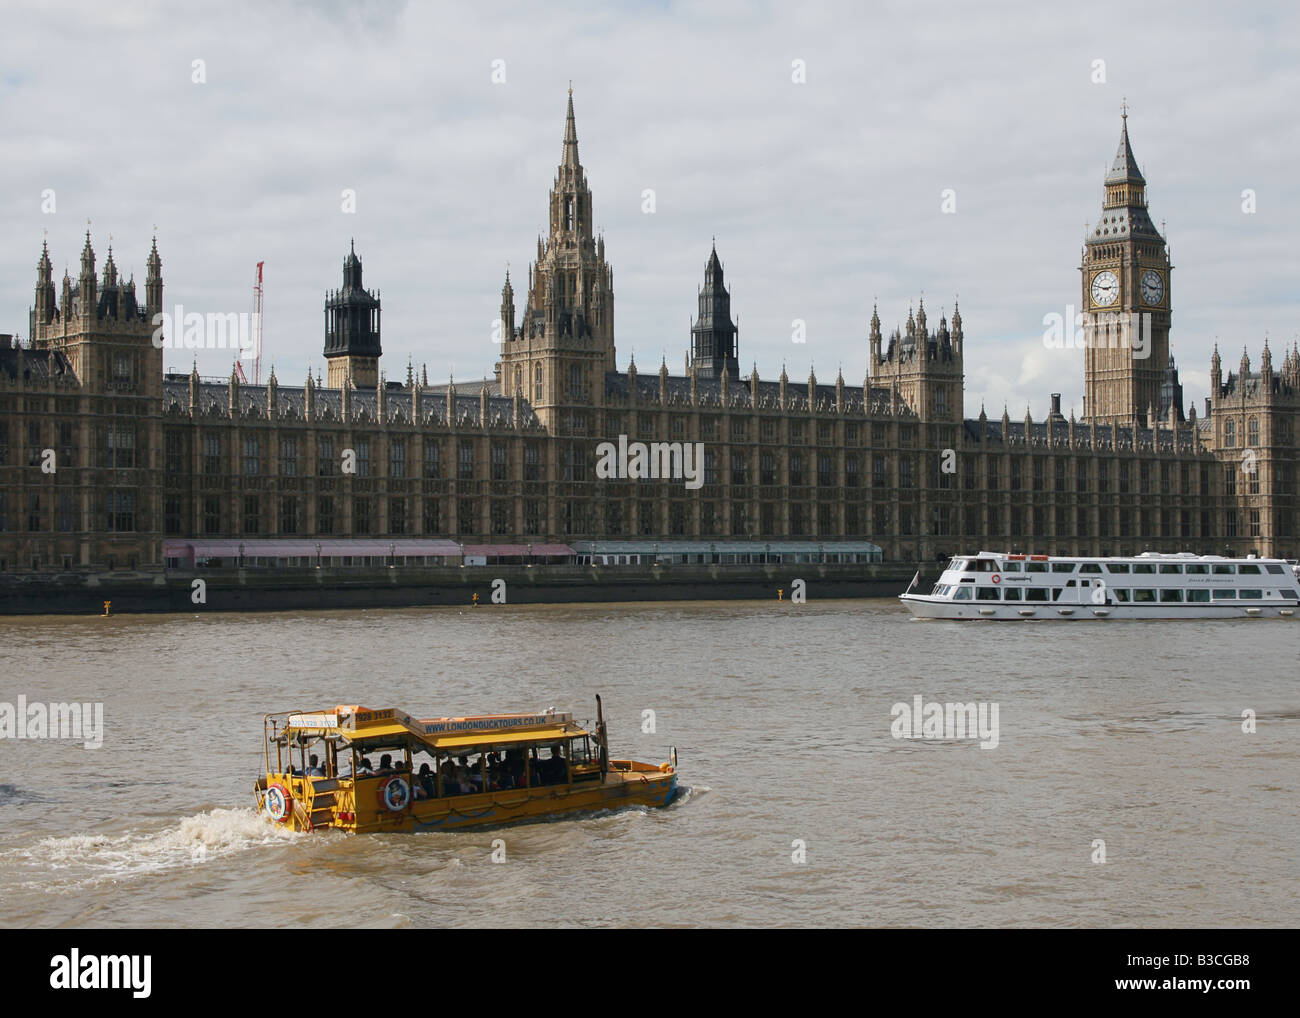 amphibious landing craft Duck tours on river Thames with Houses of Parliament London Britain  August 2008 - Stock Image